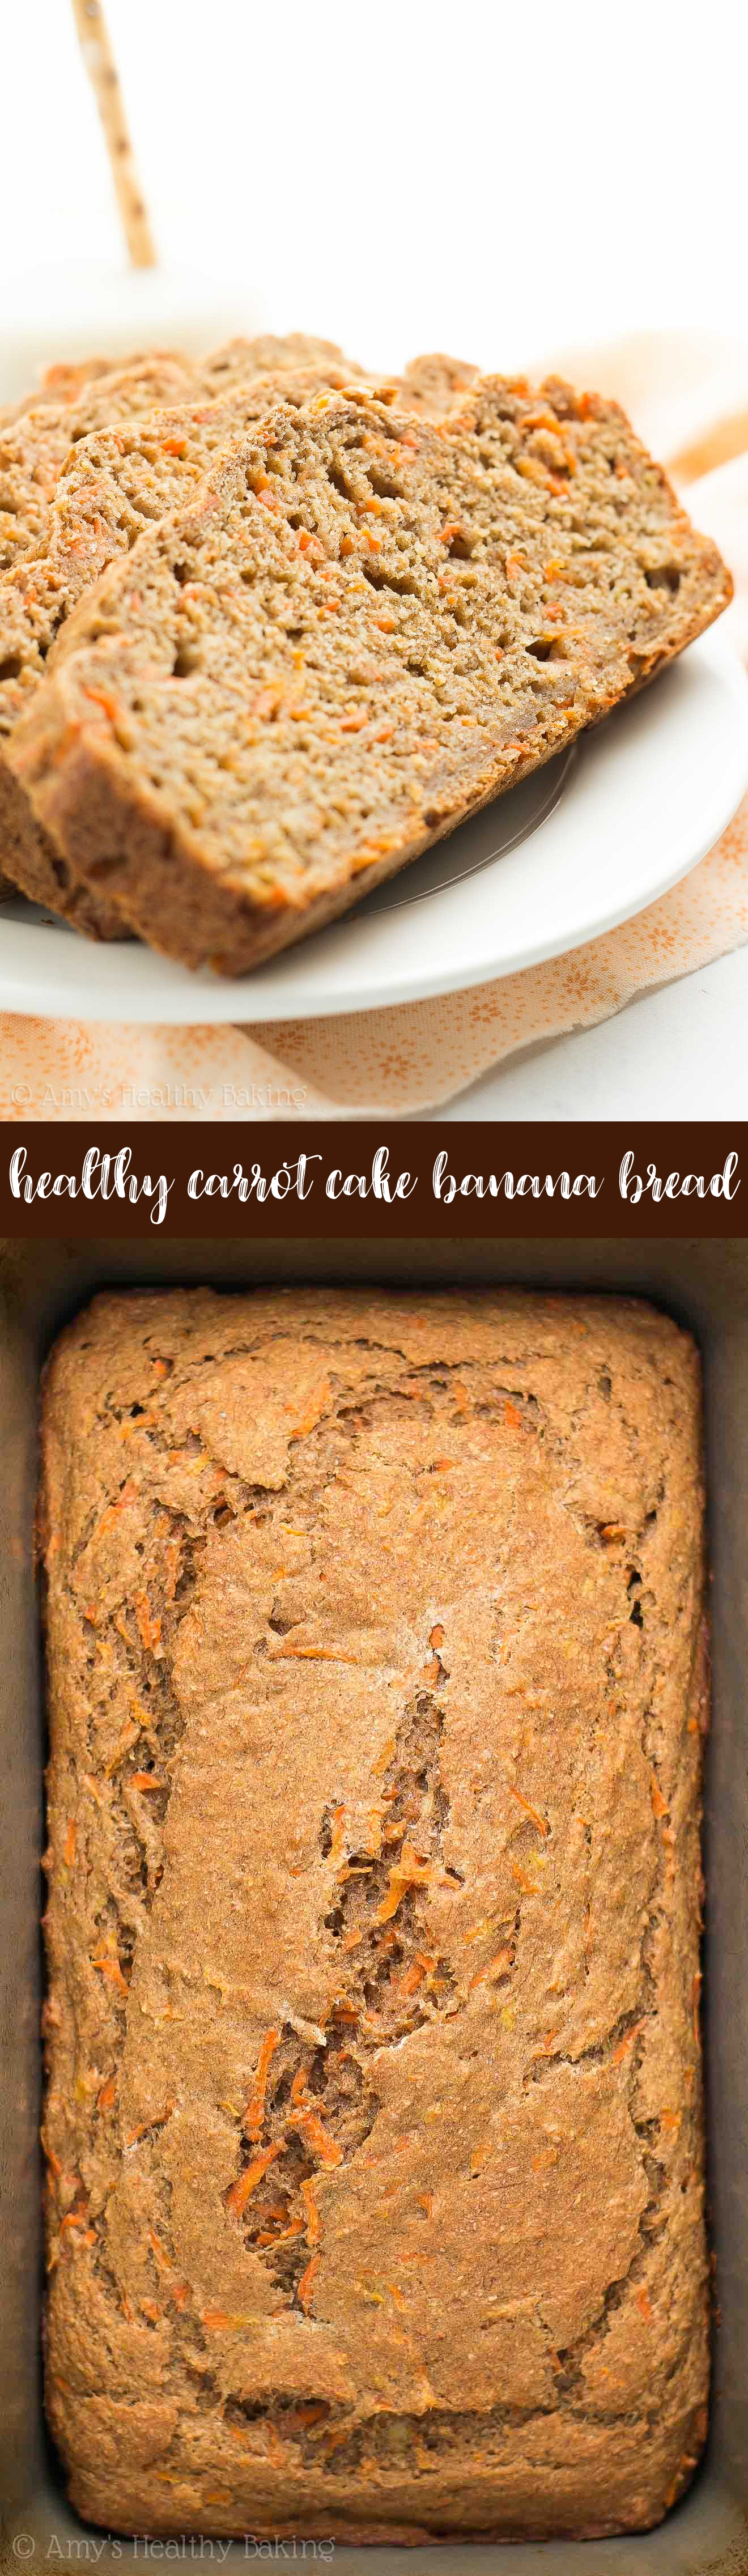 Healthy Carrot Cake Banana Bread Loaf + Slices